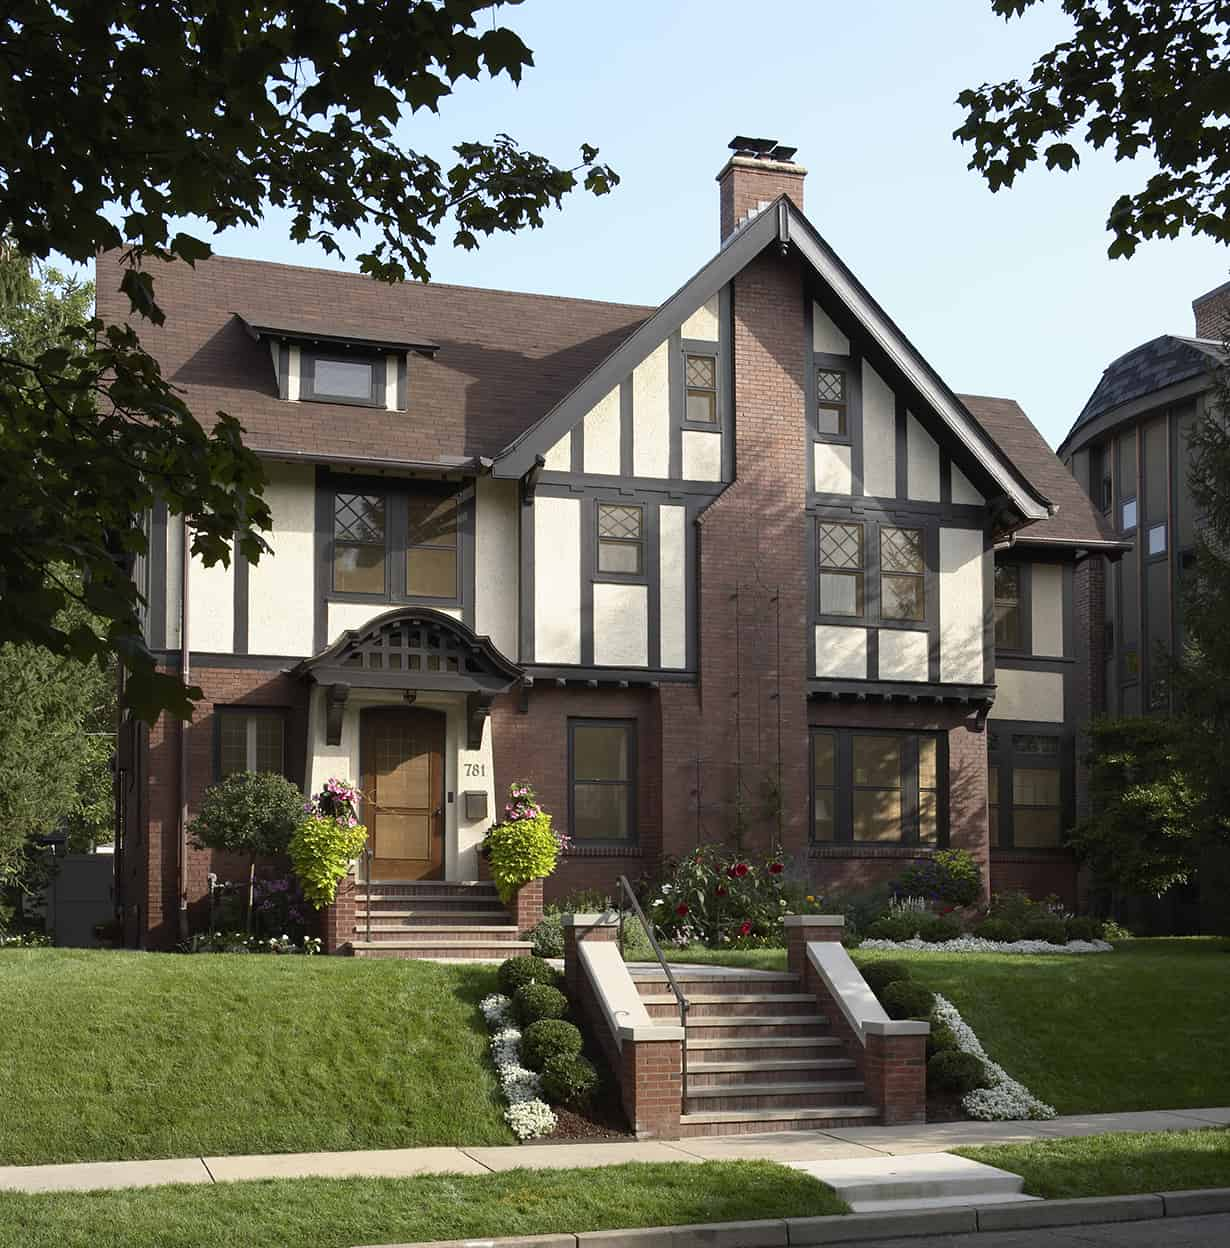 This house is the epitome of American Tudor, with it's blend of brick and half-timber, prominent chimney, striking gable, diamond-paned windows, and modest entry. An elegant and welcoming house.